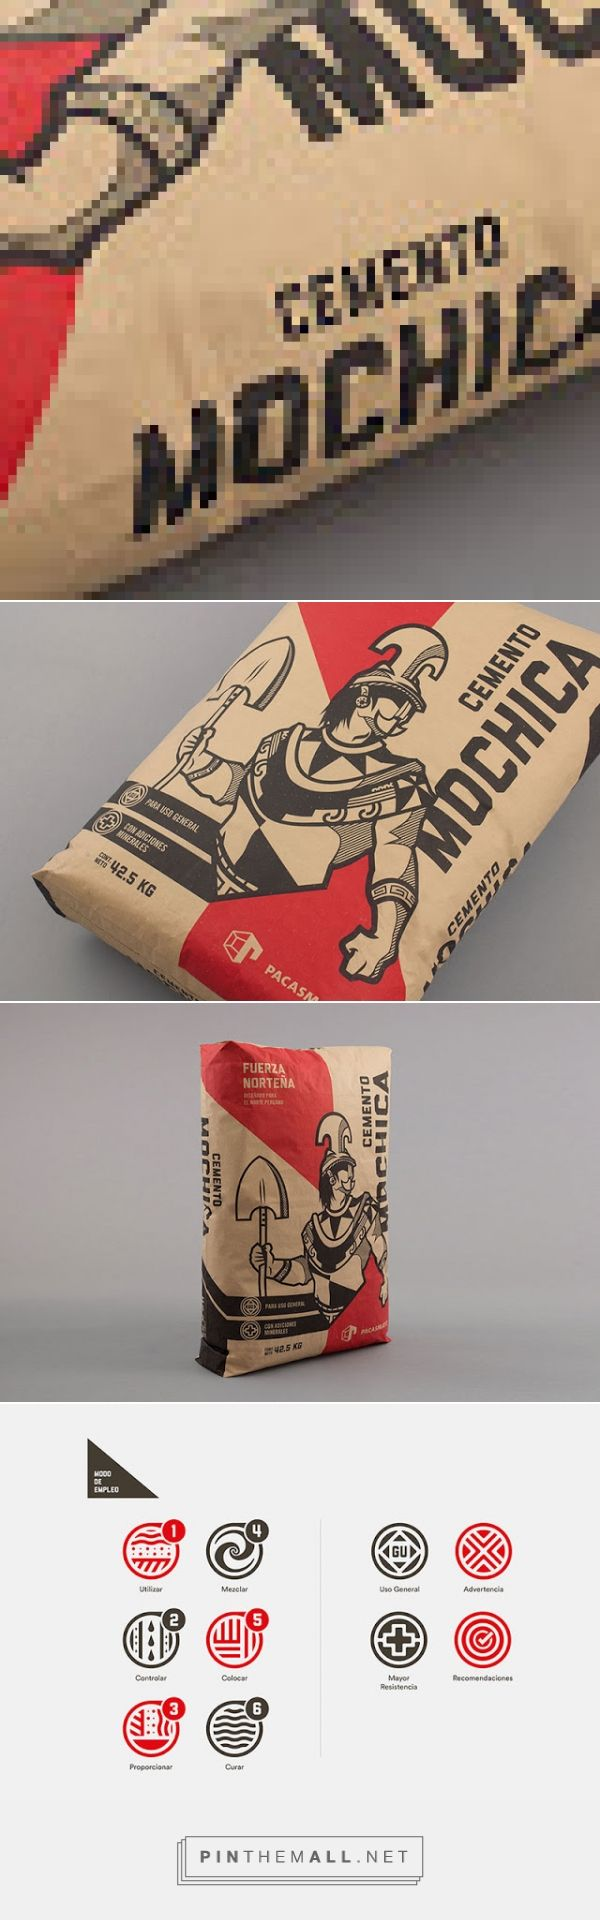 Cemento Mochica         on          Packaging of the World - Creative Package Design Gallery - created via https://pinthemall.net